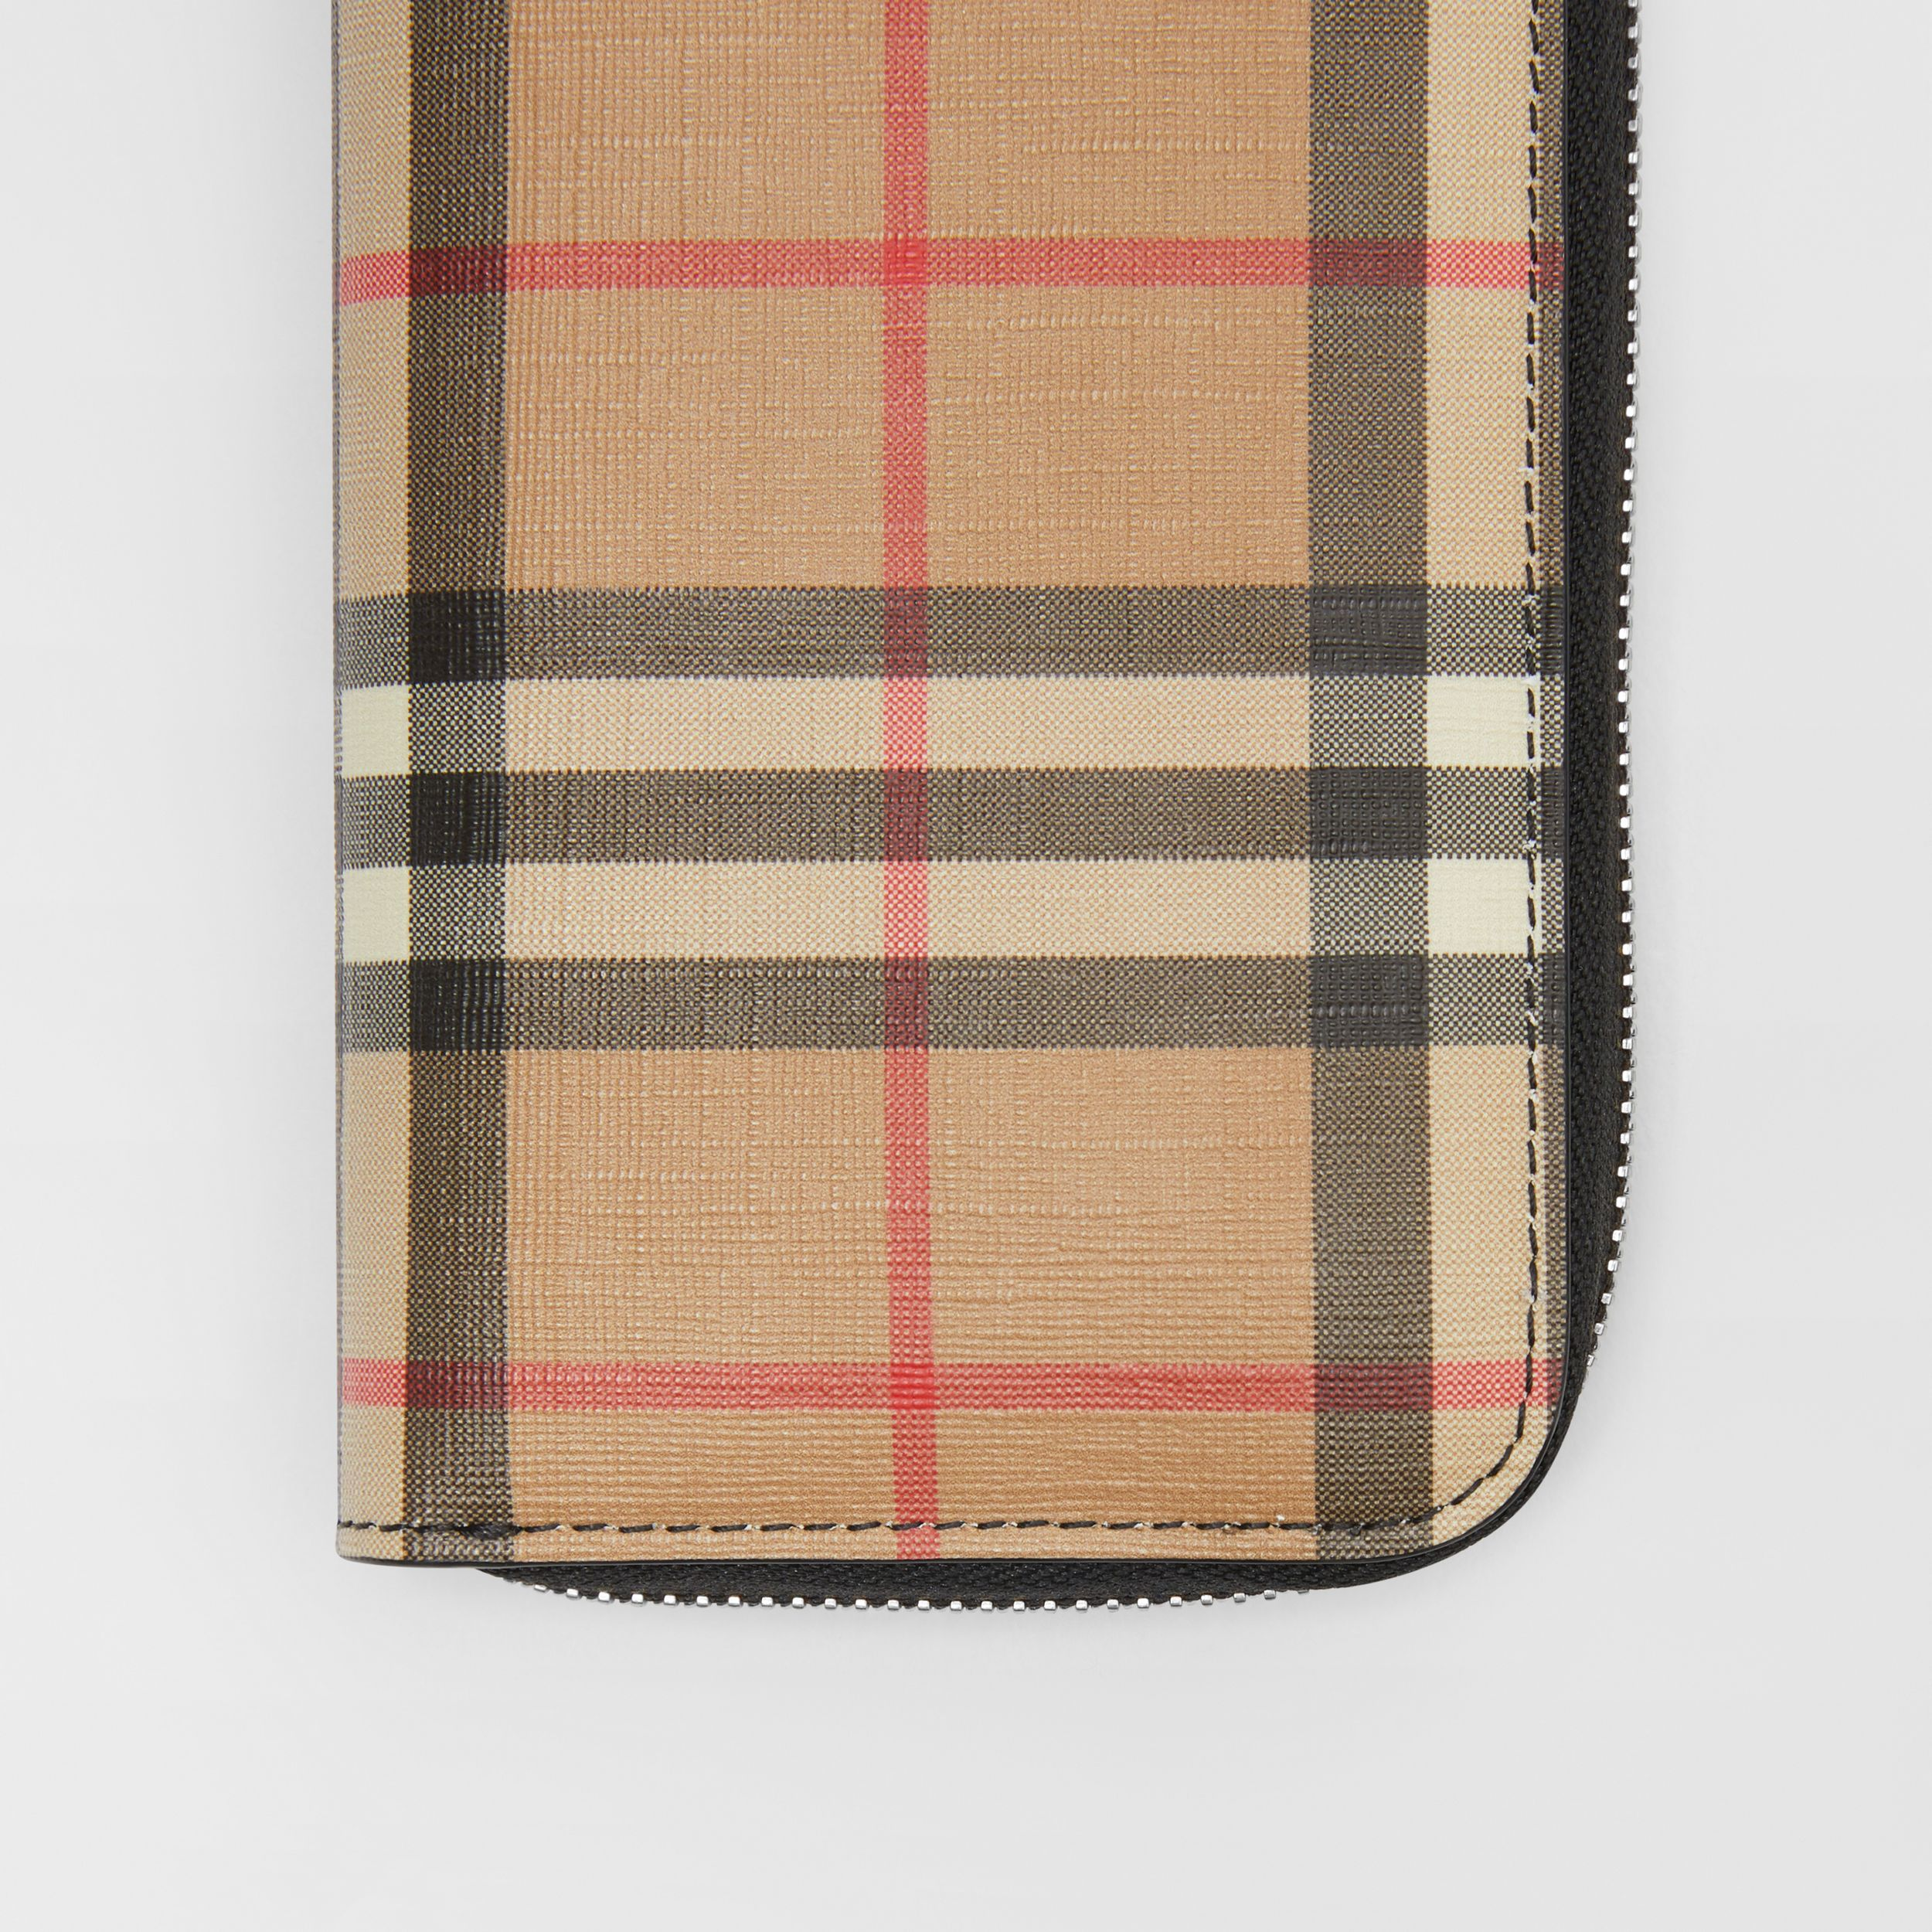 Vintage Check and Leather Ziparound Wallet in Black - Women | Burberry Singapore - 2